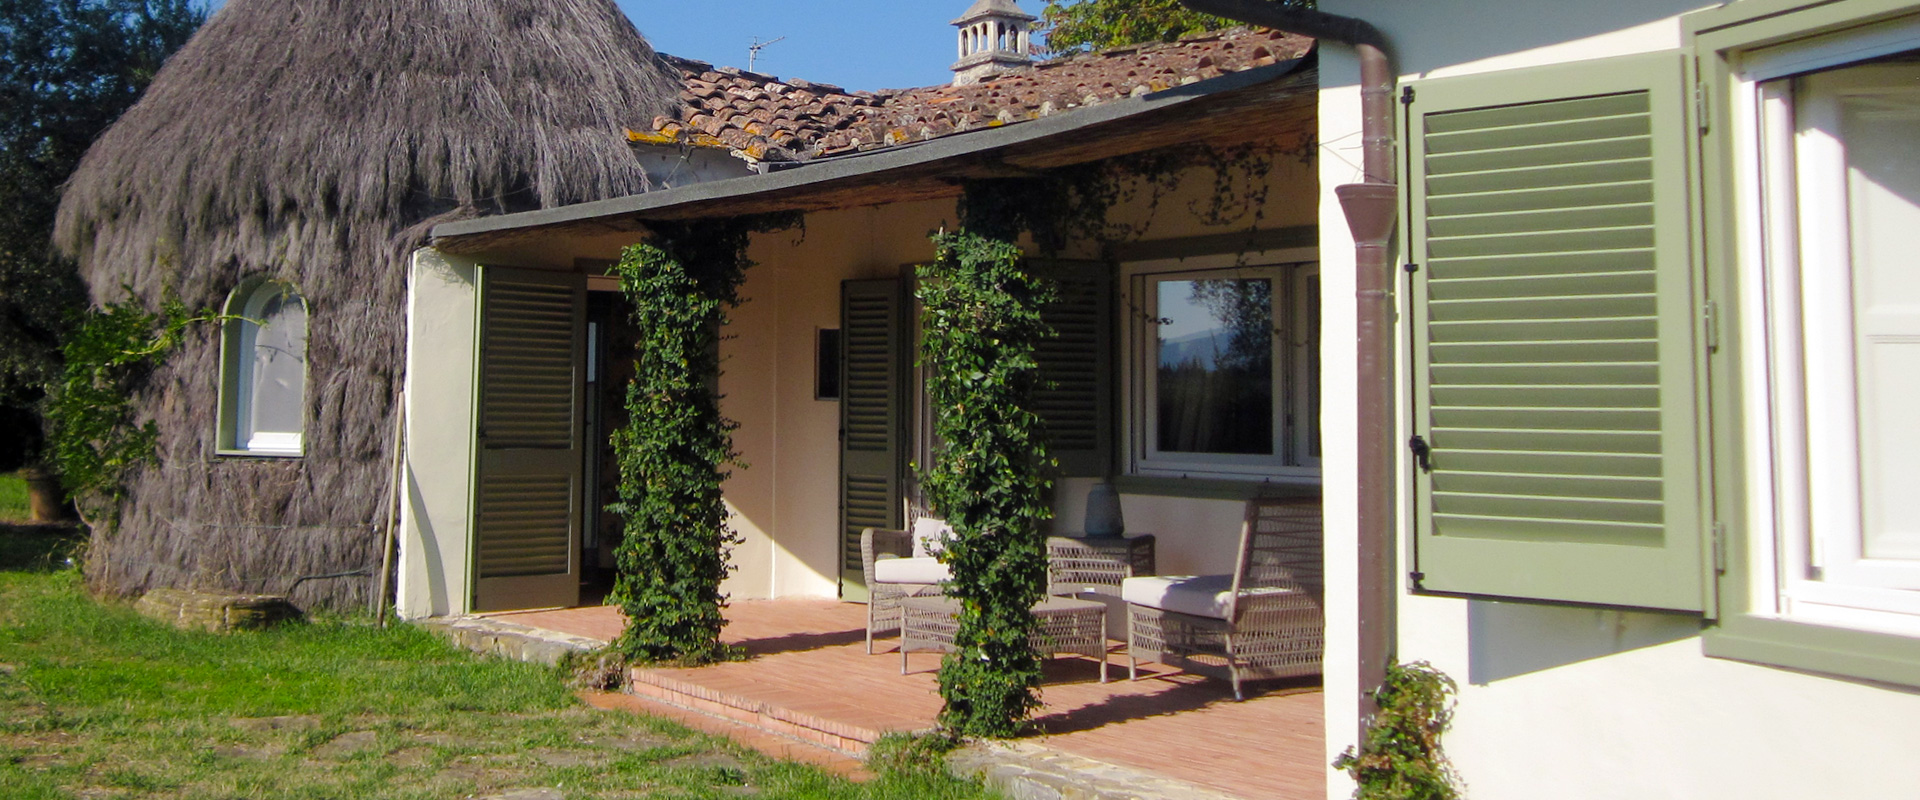 Villa rent in Tuscany